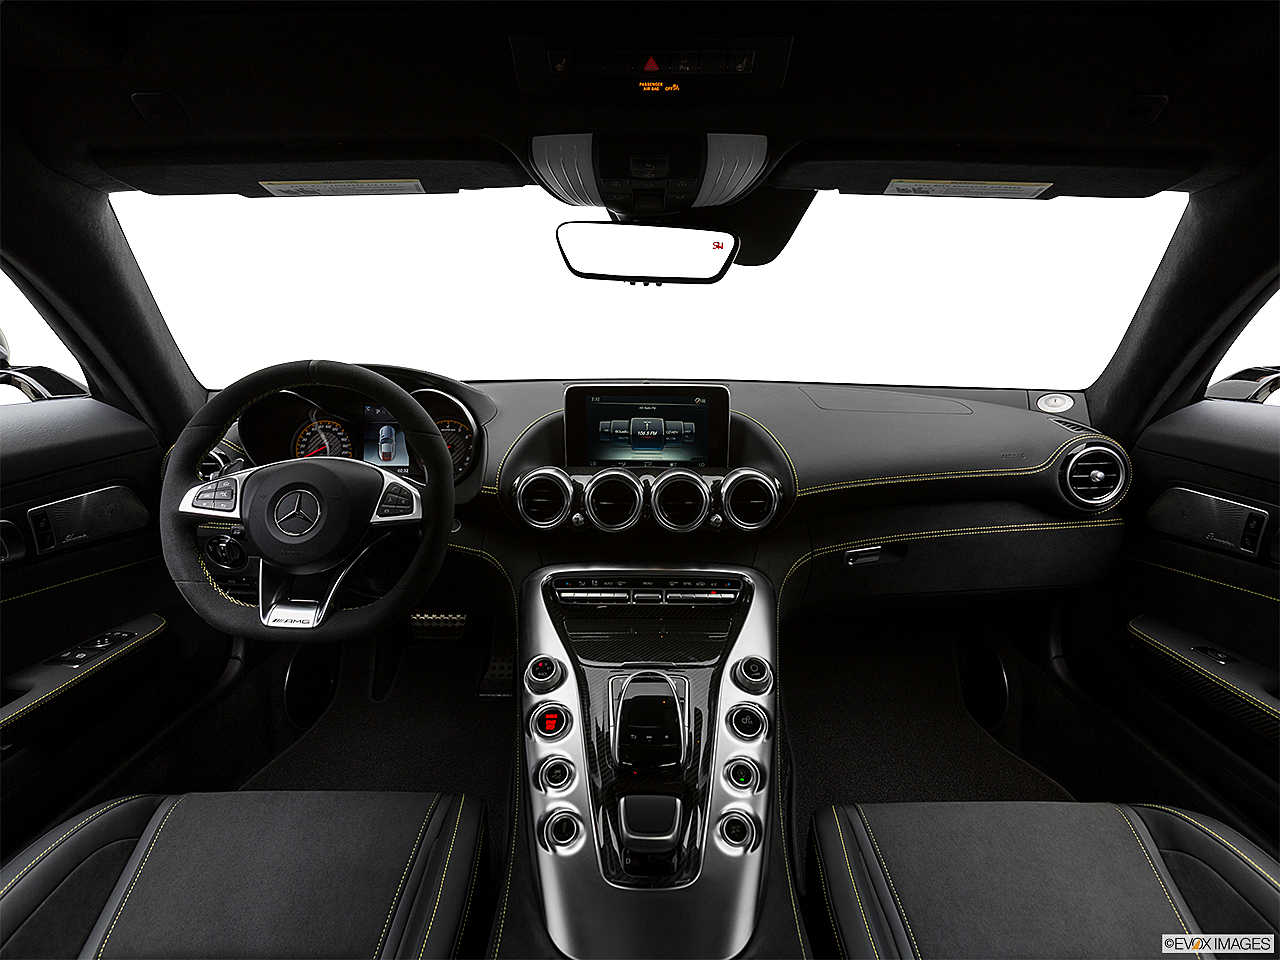 2019 Mercedes-Benz AMG GT S, centered wide dash shot